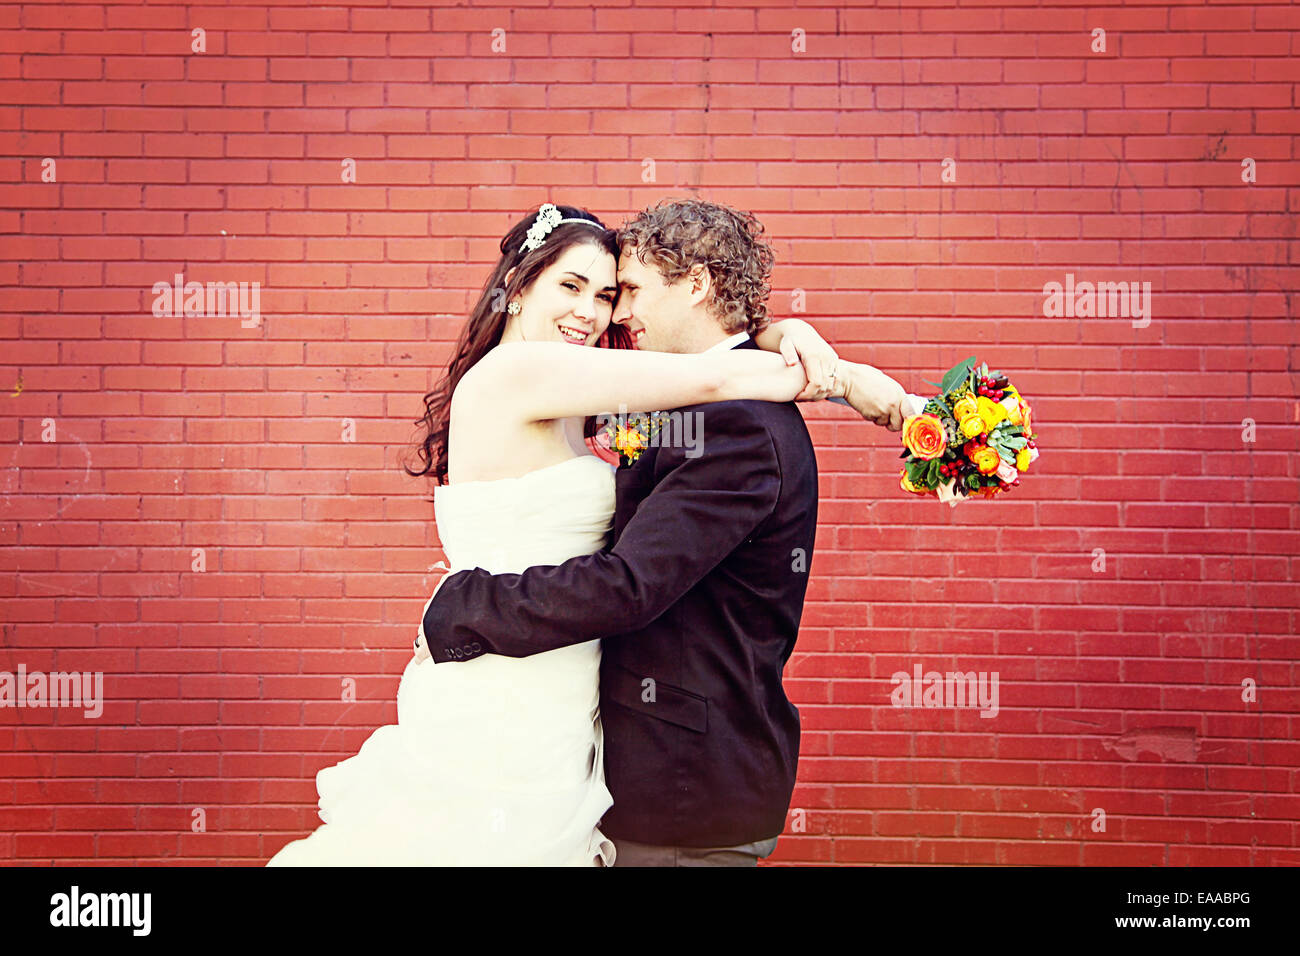 Wedding Couple on there wedding day - Bride and Groom - Stock Image